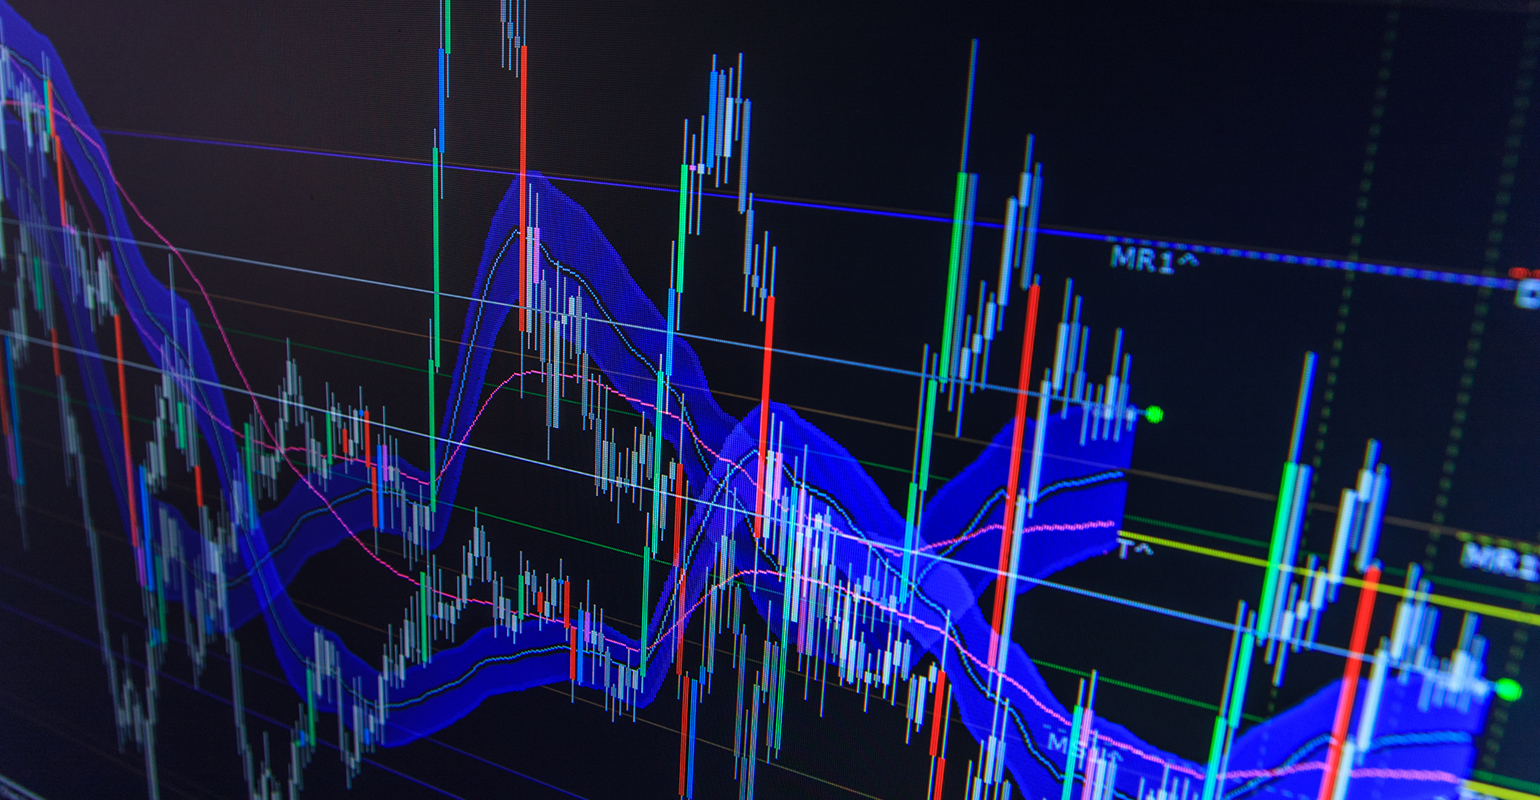 stock market and cost The us stock market is open for business for six-and-a-half hours—from 9:30 am to 4:00 pm et—nearly every business day, and it draws crowds of thousands upon thousands of investors as soon as the opening bell rings.